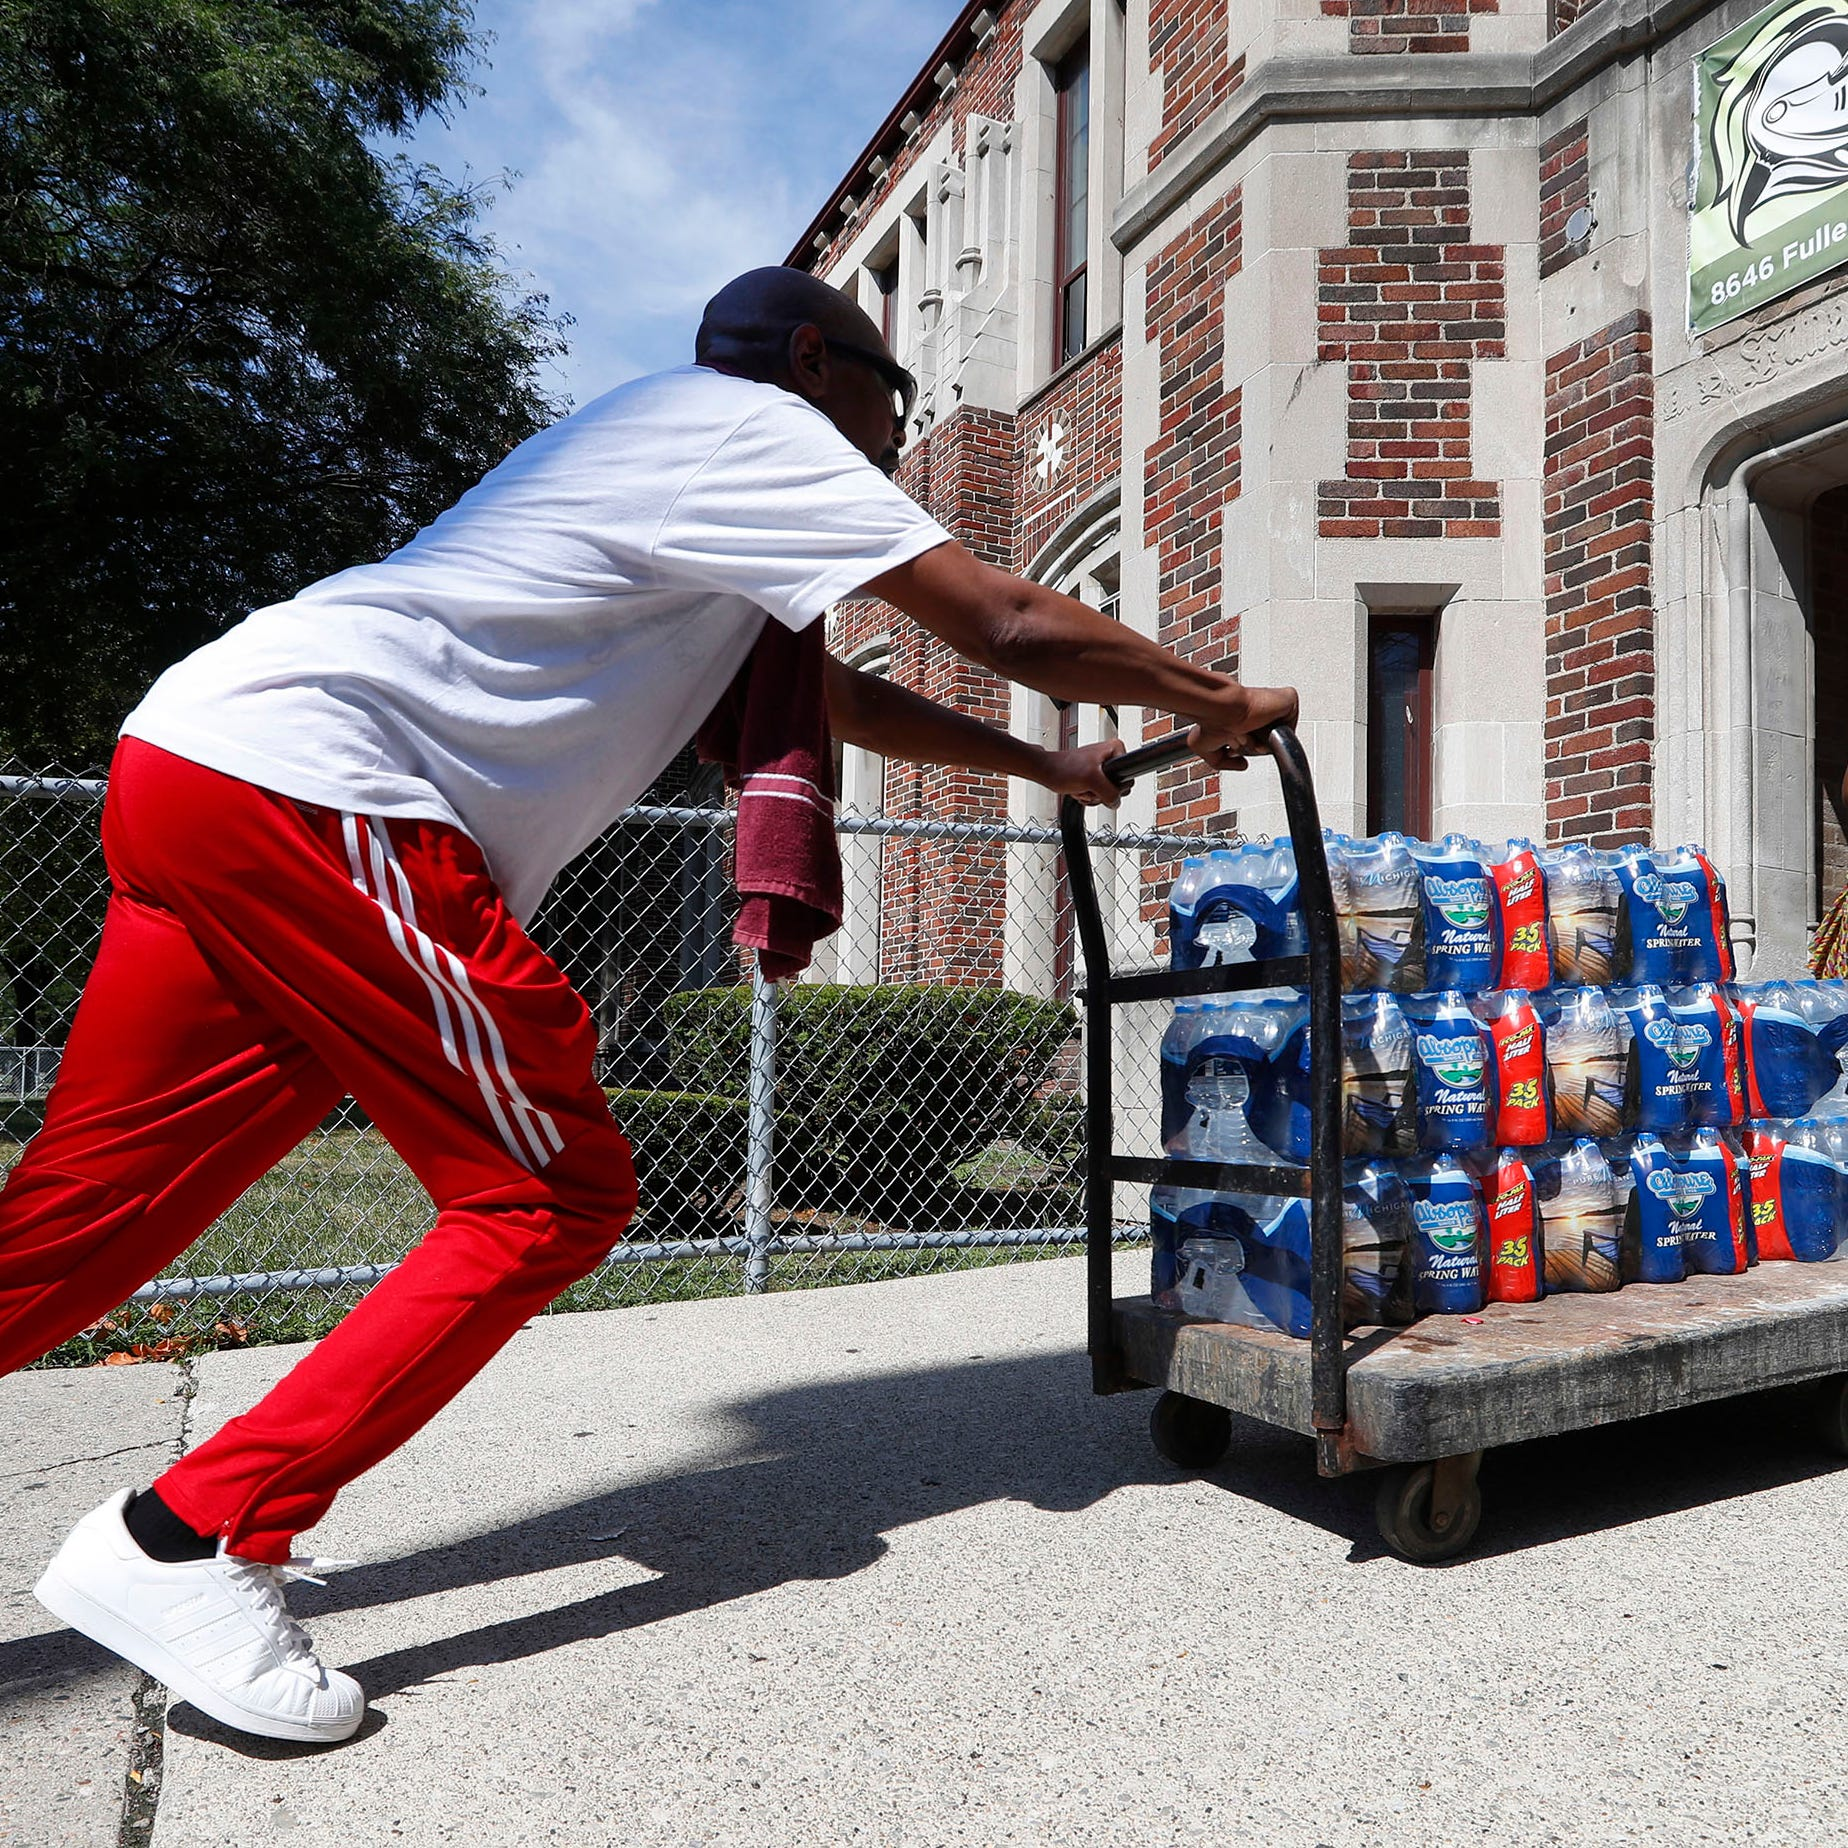 Not just Detroit: Lead in drinking water plagues schools nationwide